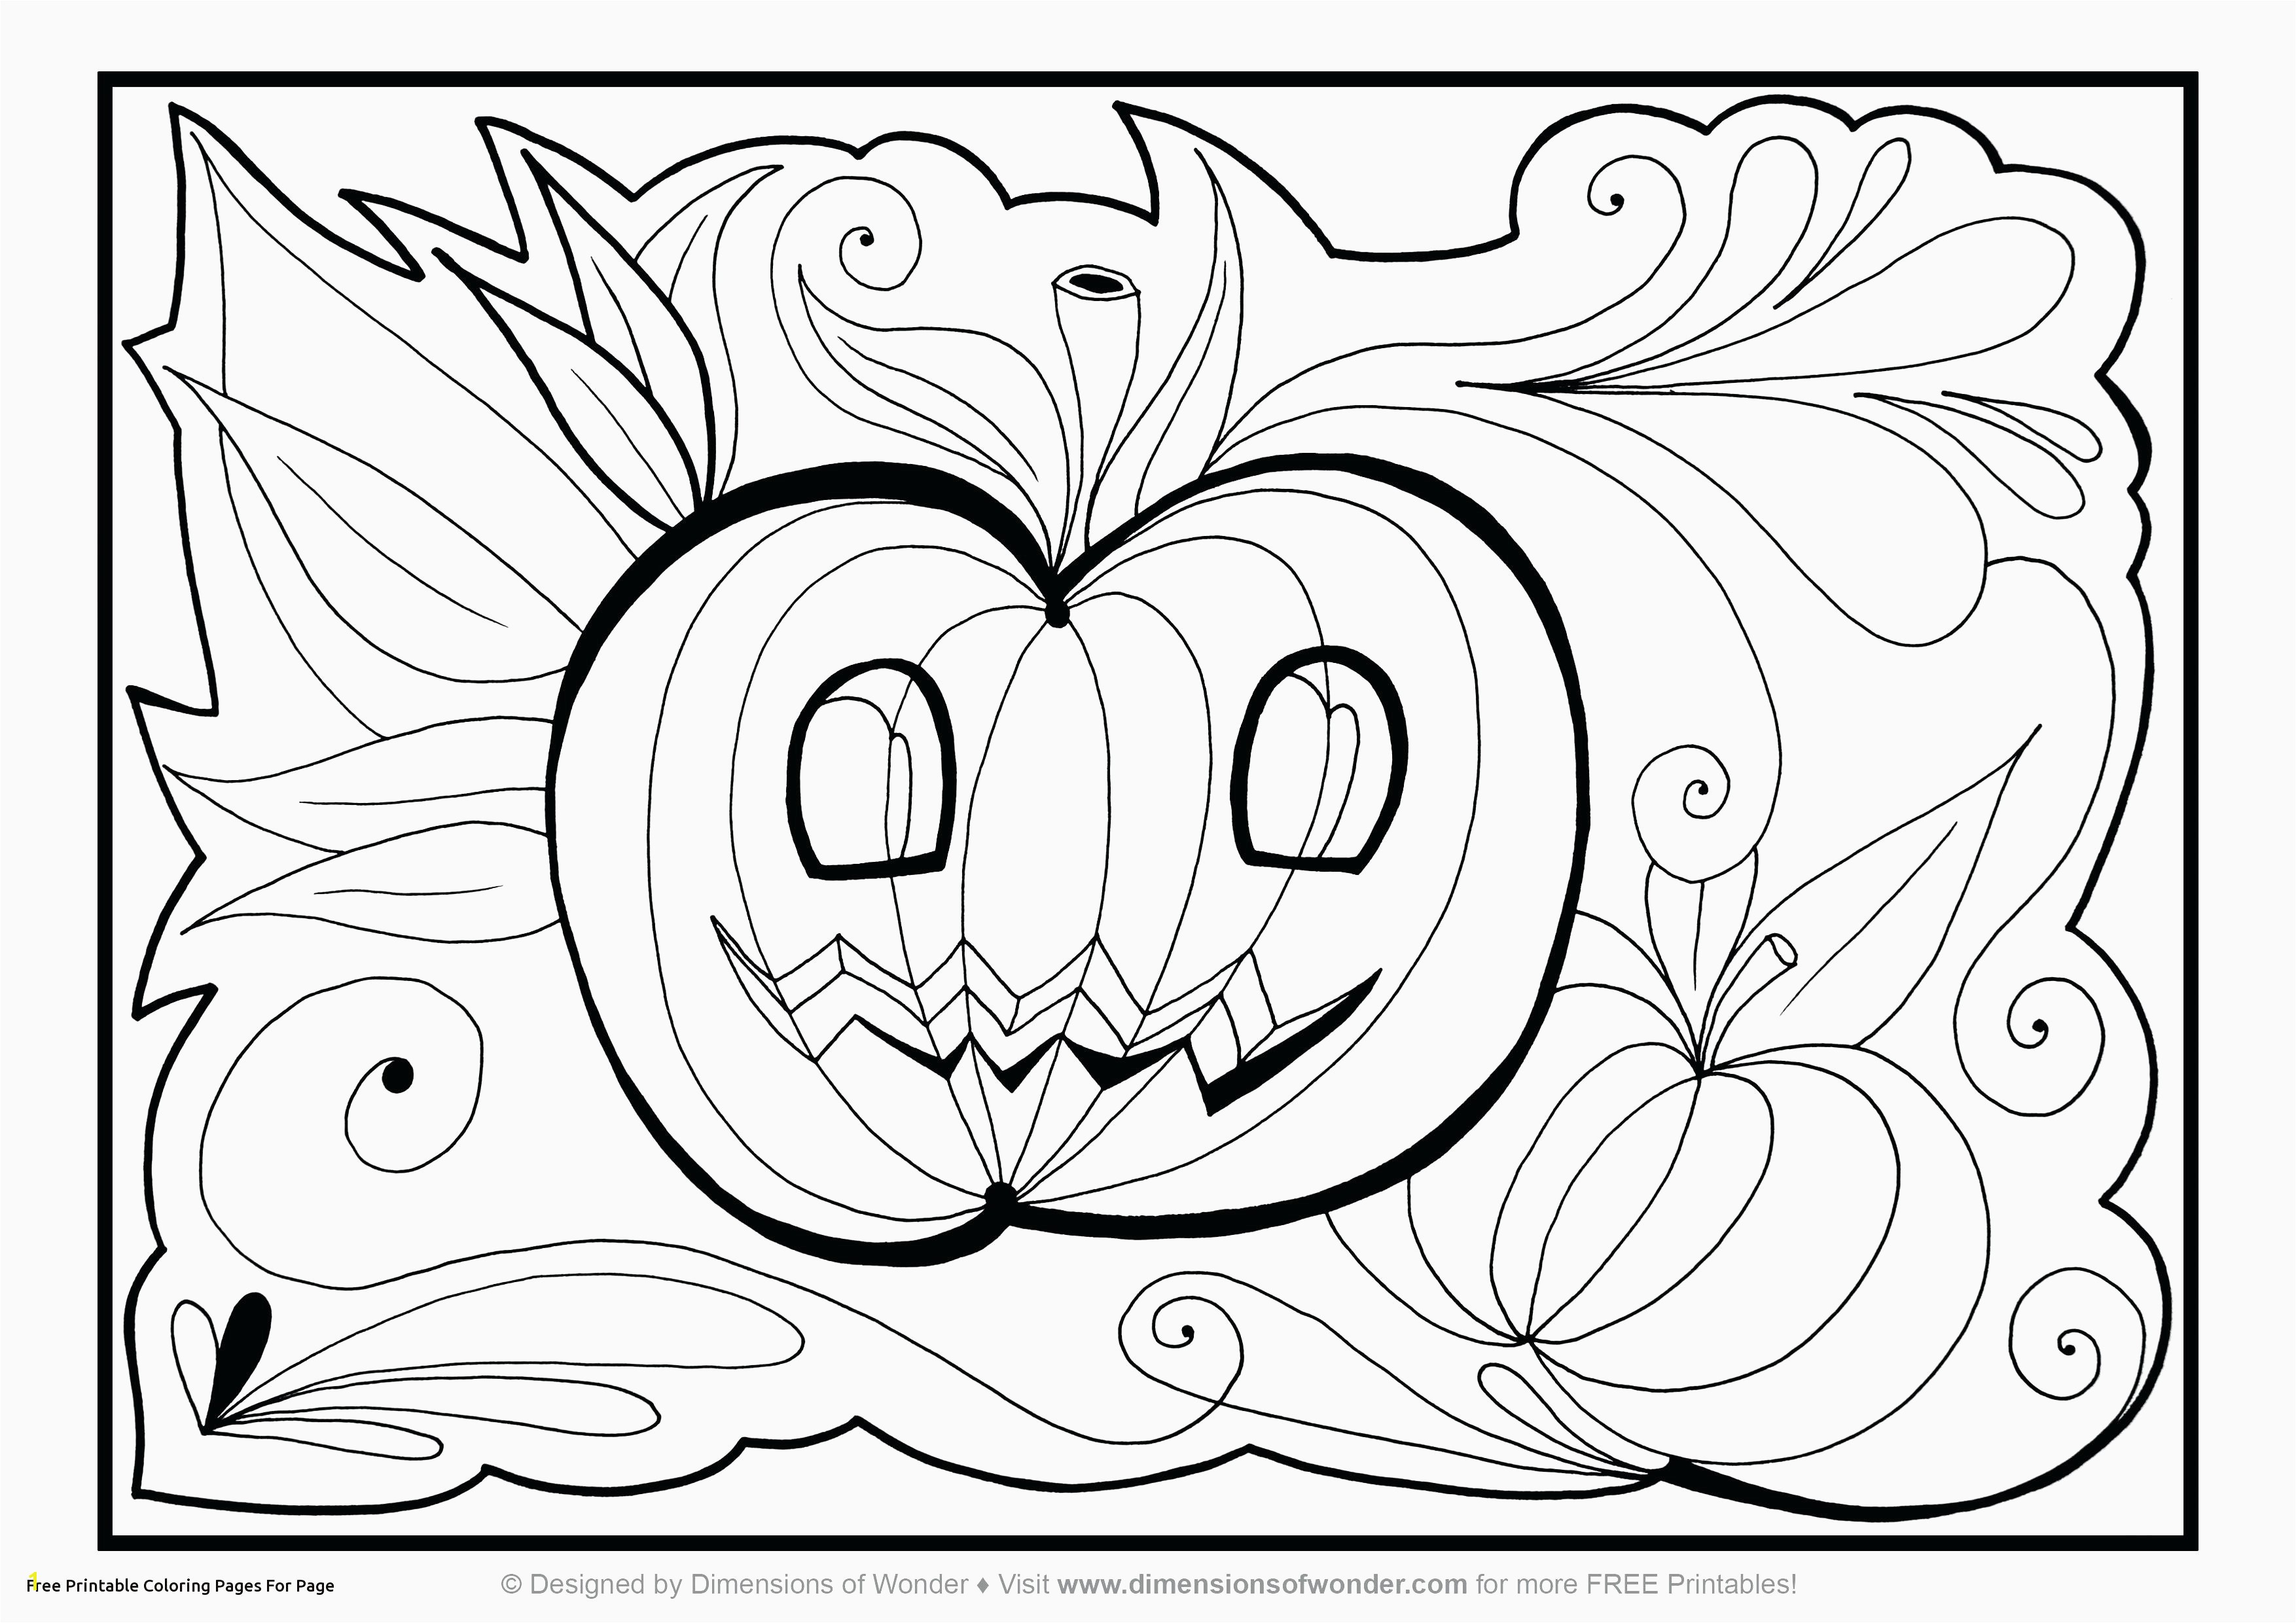 Coloring Pages for Adults Free Printable Free Printable Halloween Coloring Pages Printable Home Coloring